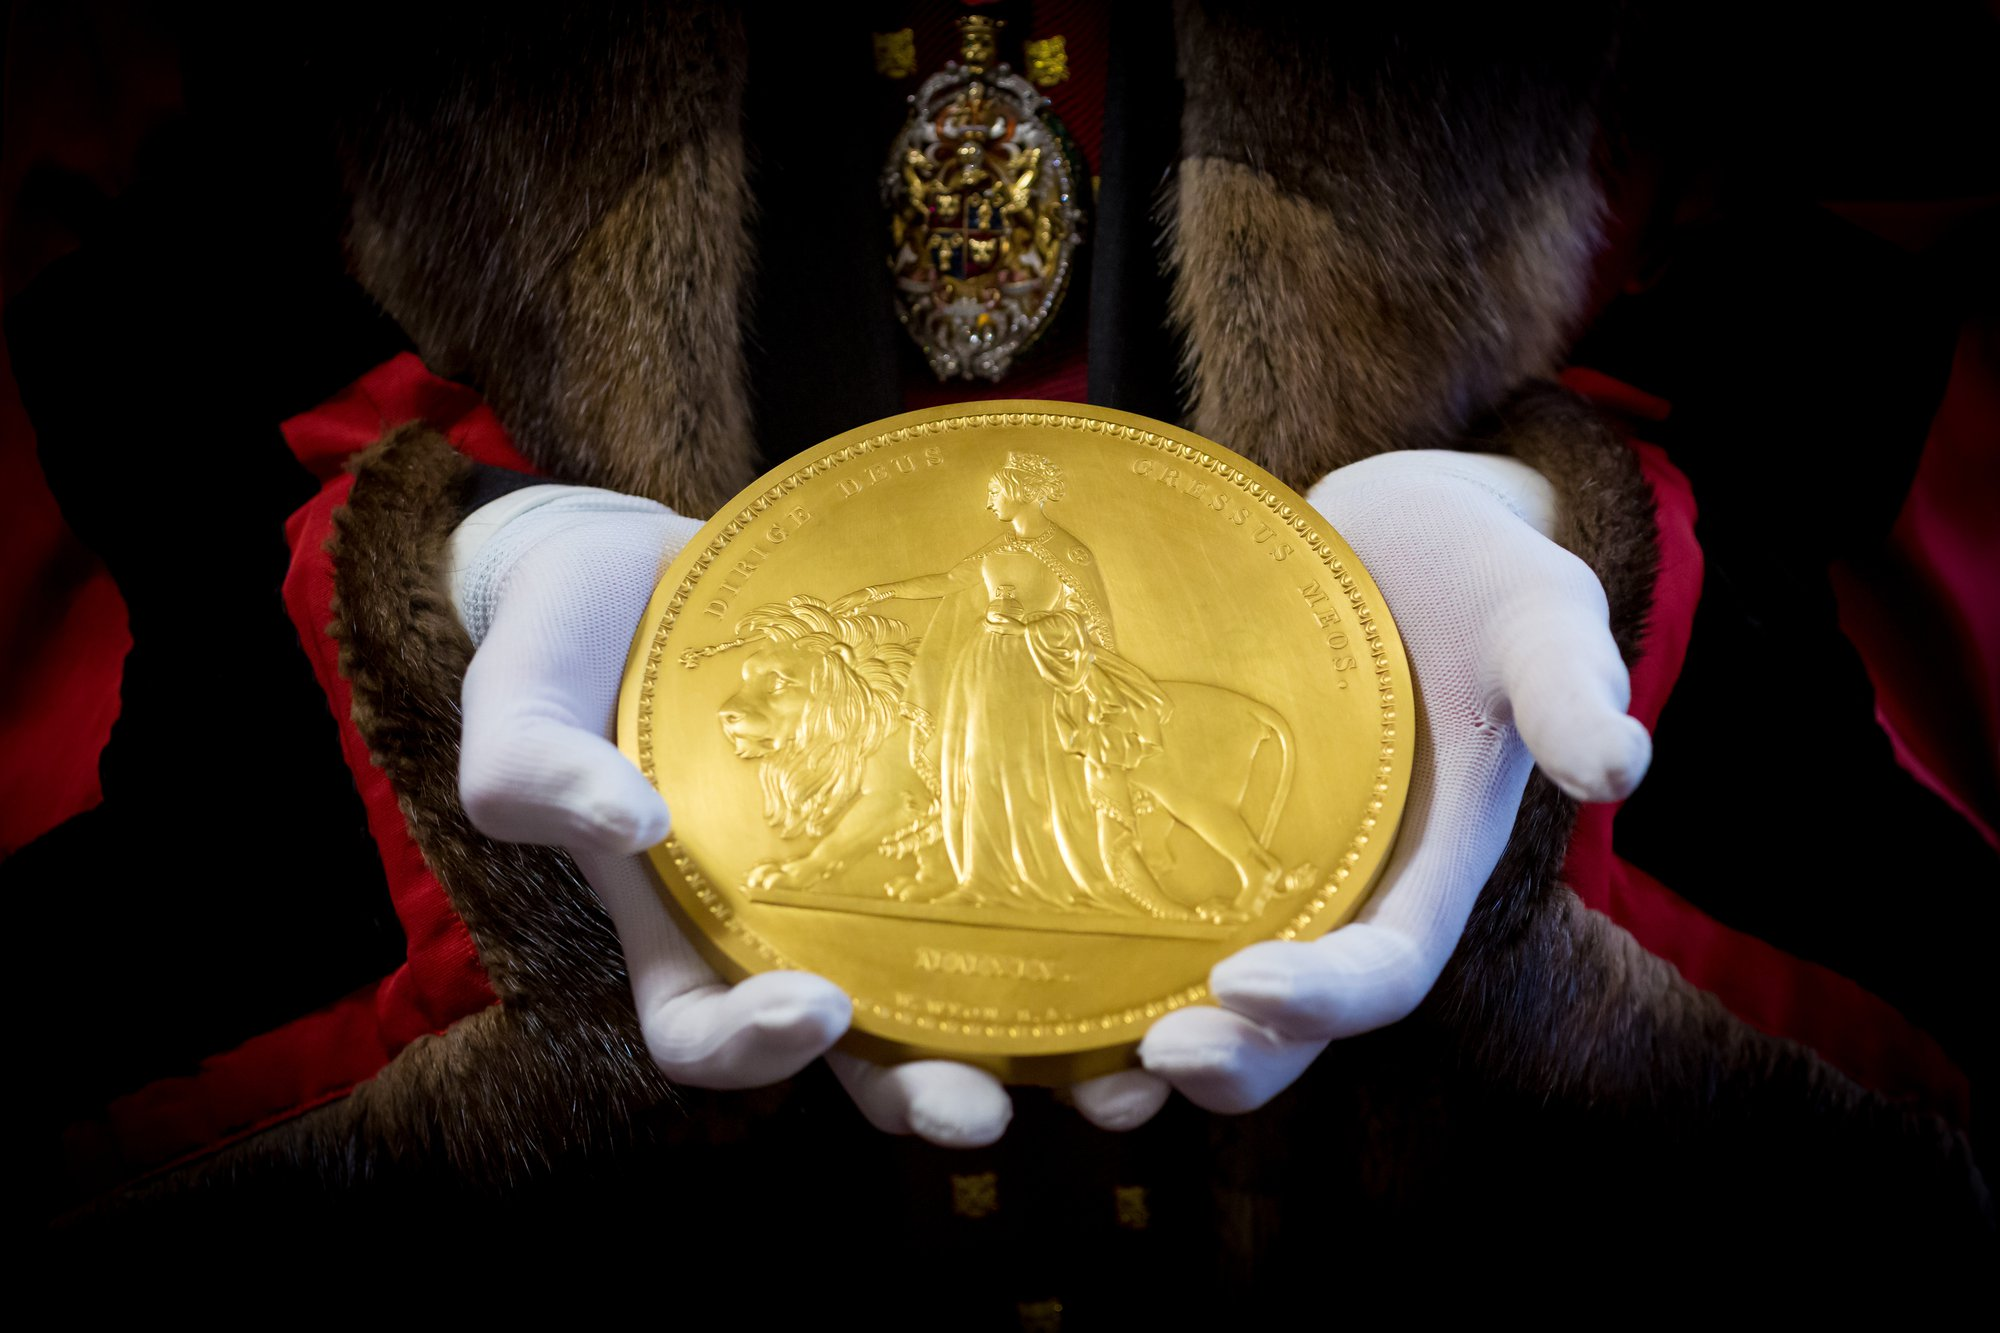 Trial of the Pyx 2020 – protecting consumers for over 700 years